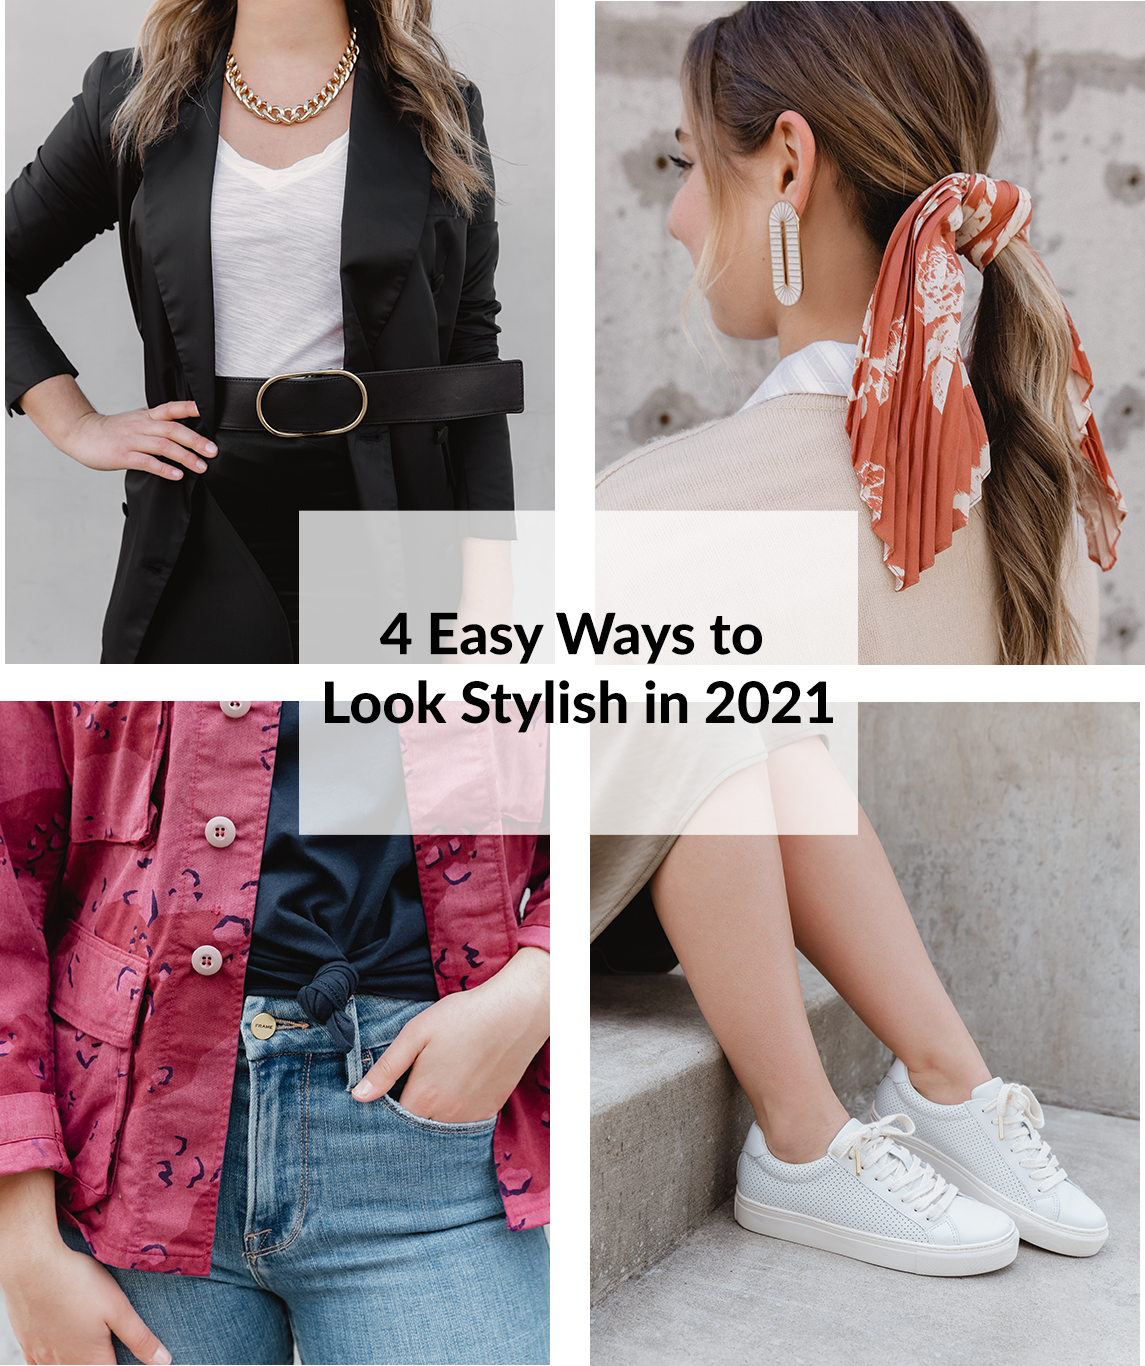 New Year New You: 4 Easy Ways to Look Stylish in 2021